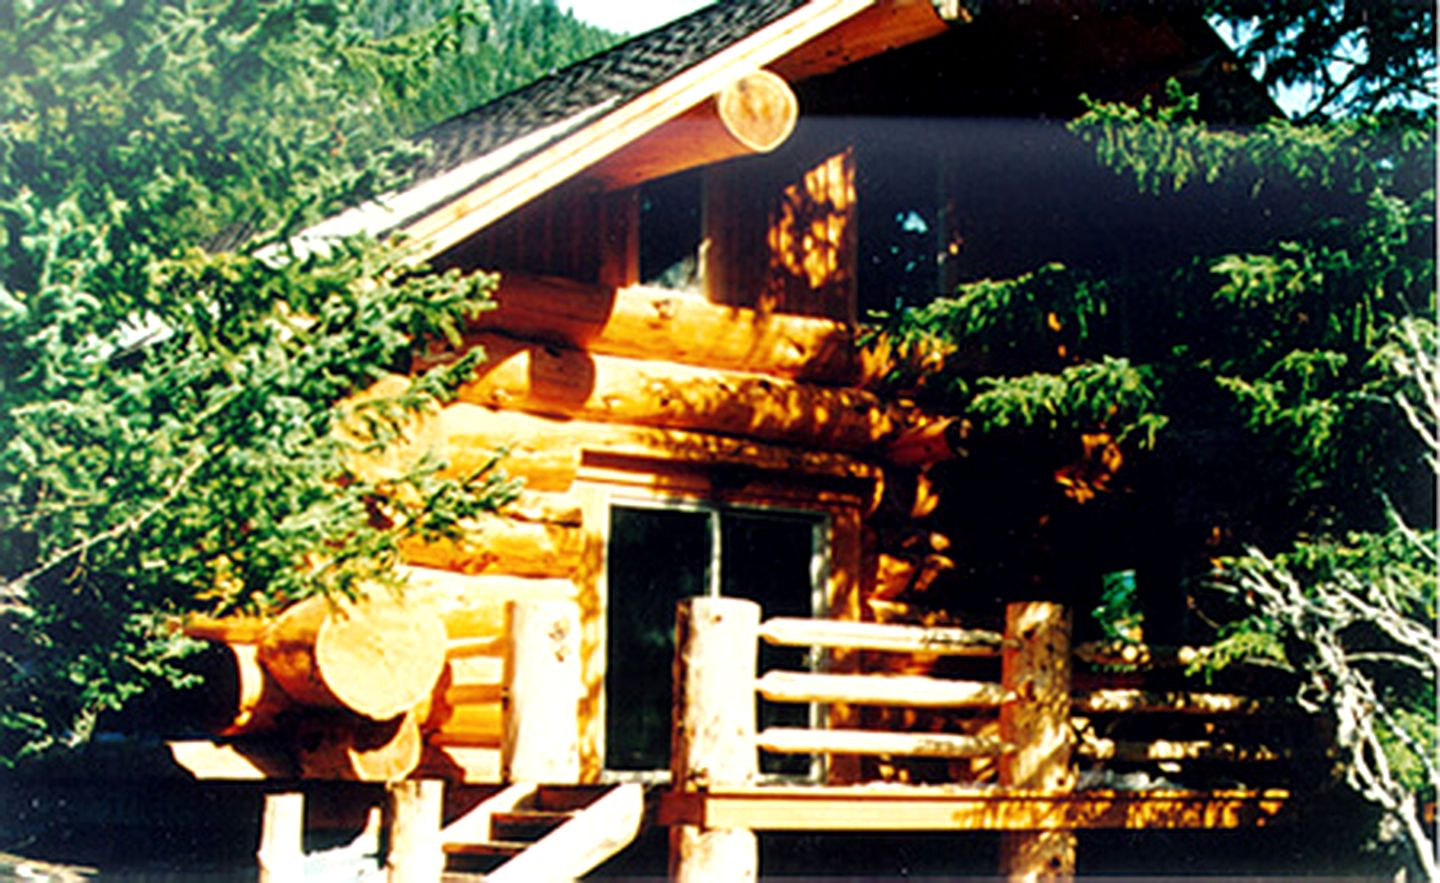 Cabins (Big Sky, Montana, United States)